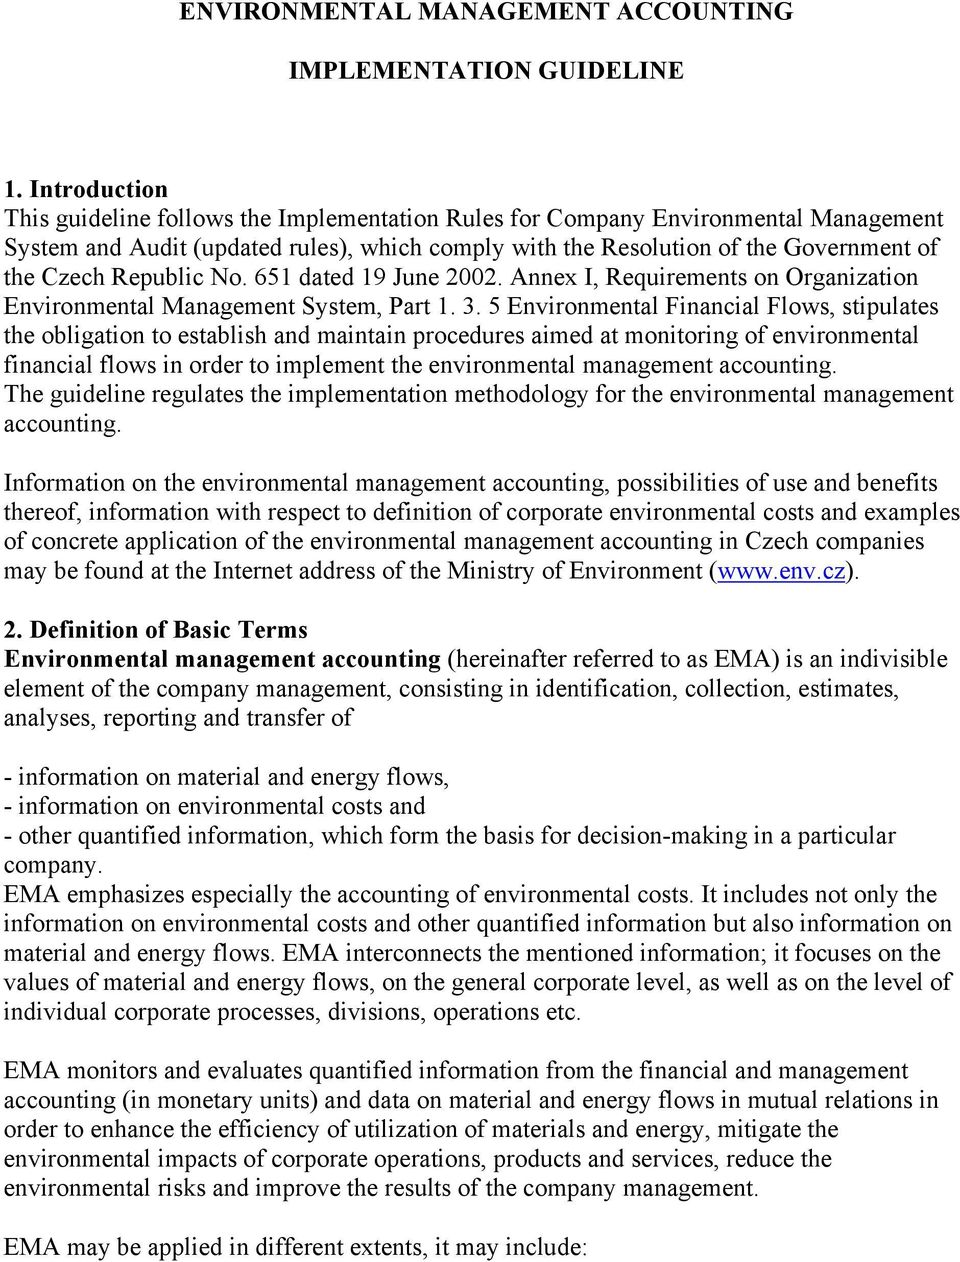 Republic No. 651 dated 19 June 2002. Annex I, Requirements on Organization Environmental Management System, Part 1. 3.